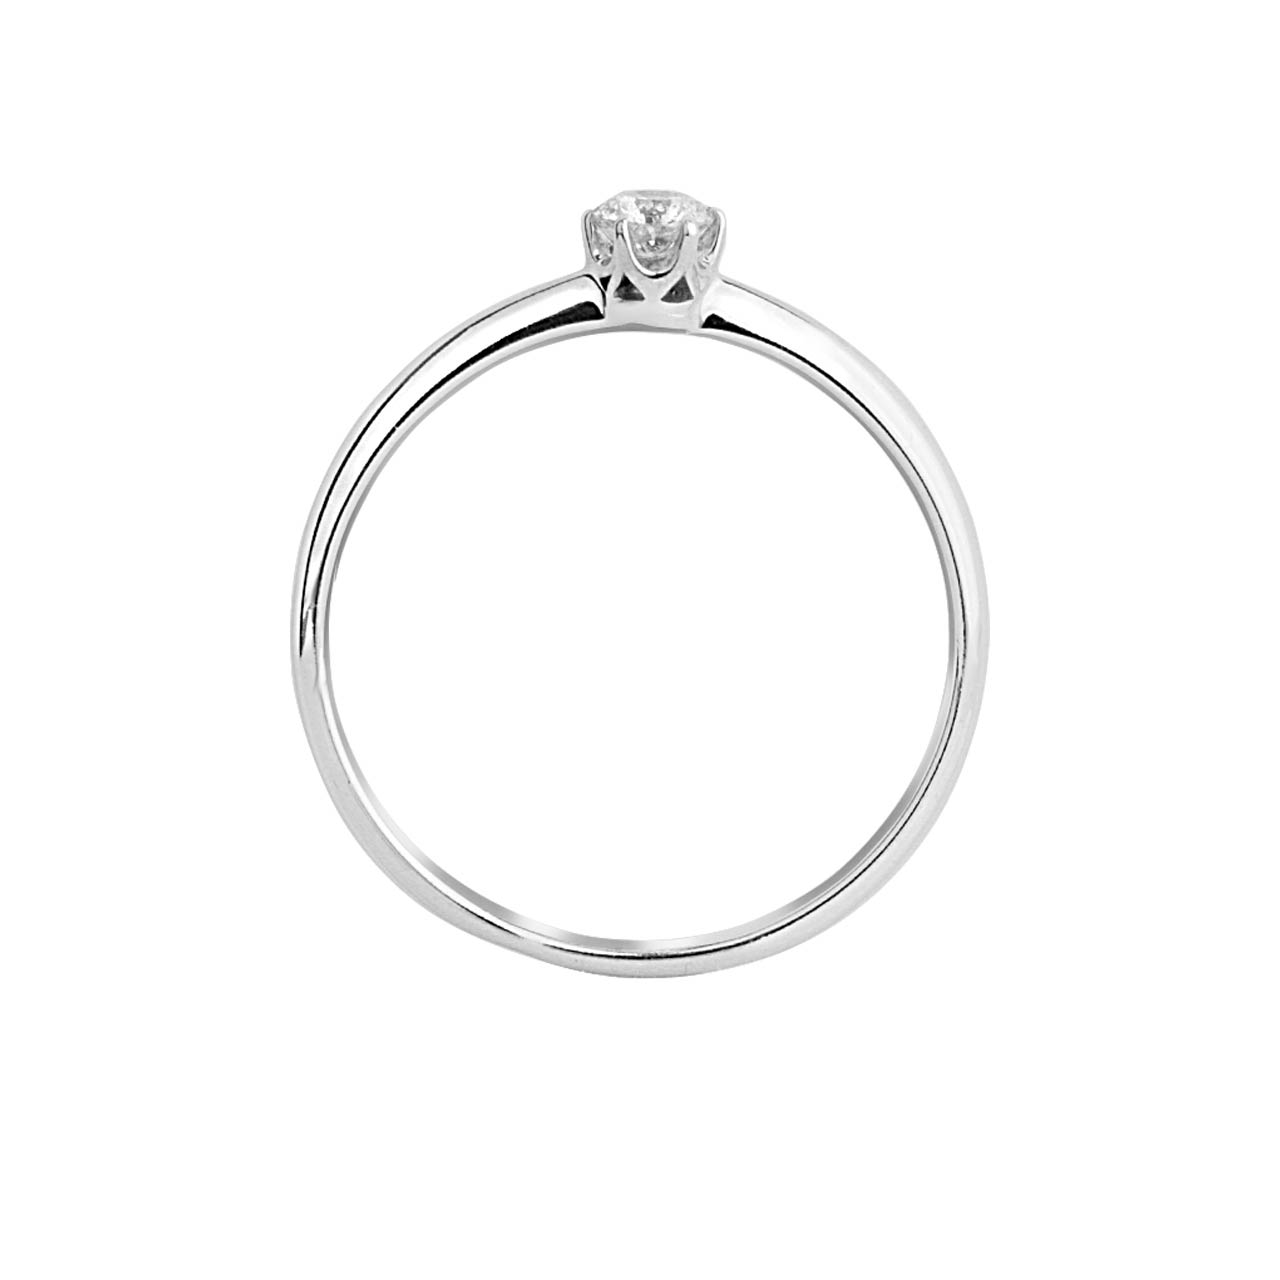 Solitaire Diamond 14kt White Gold Engagement Ring. View 2